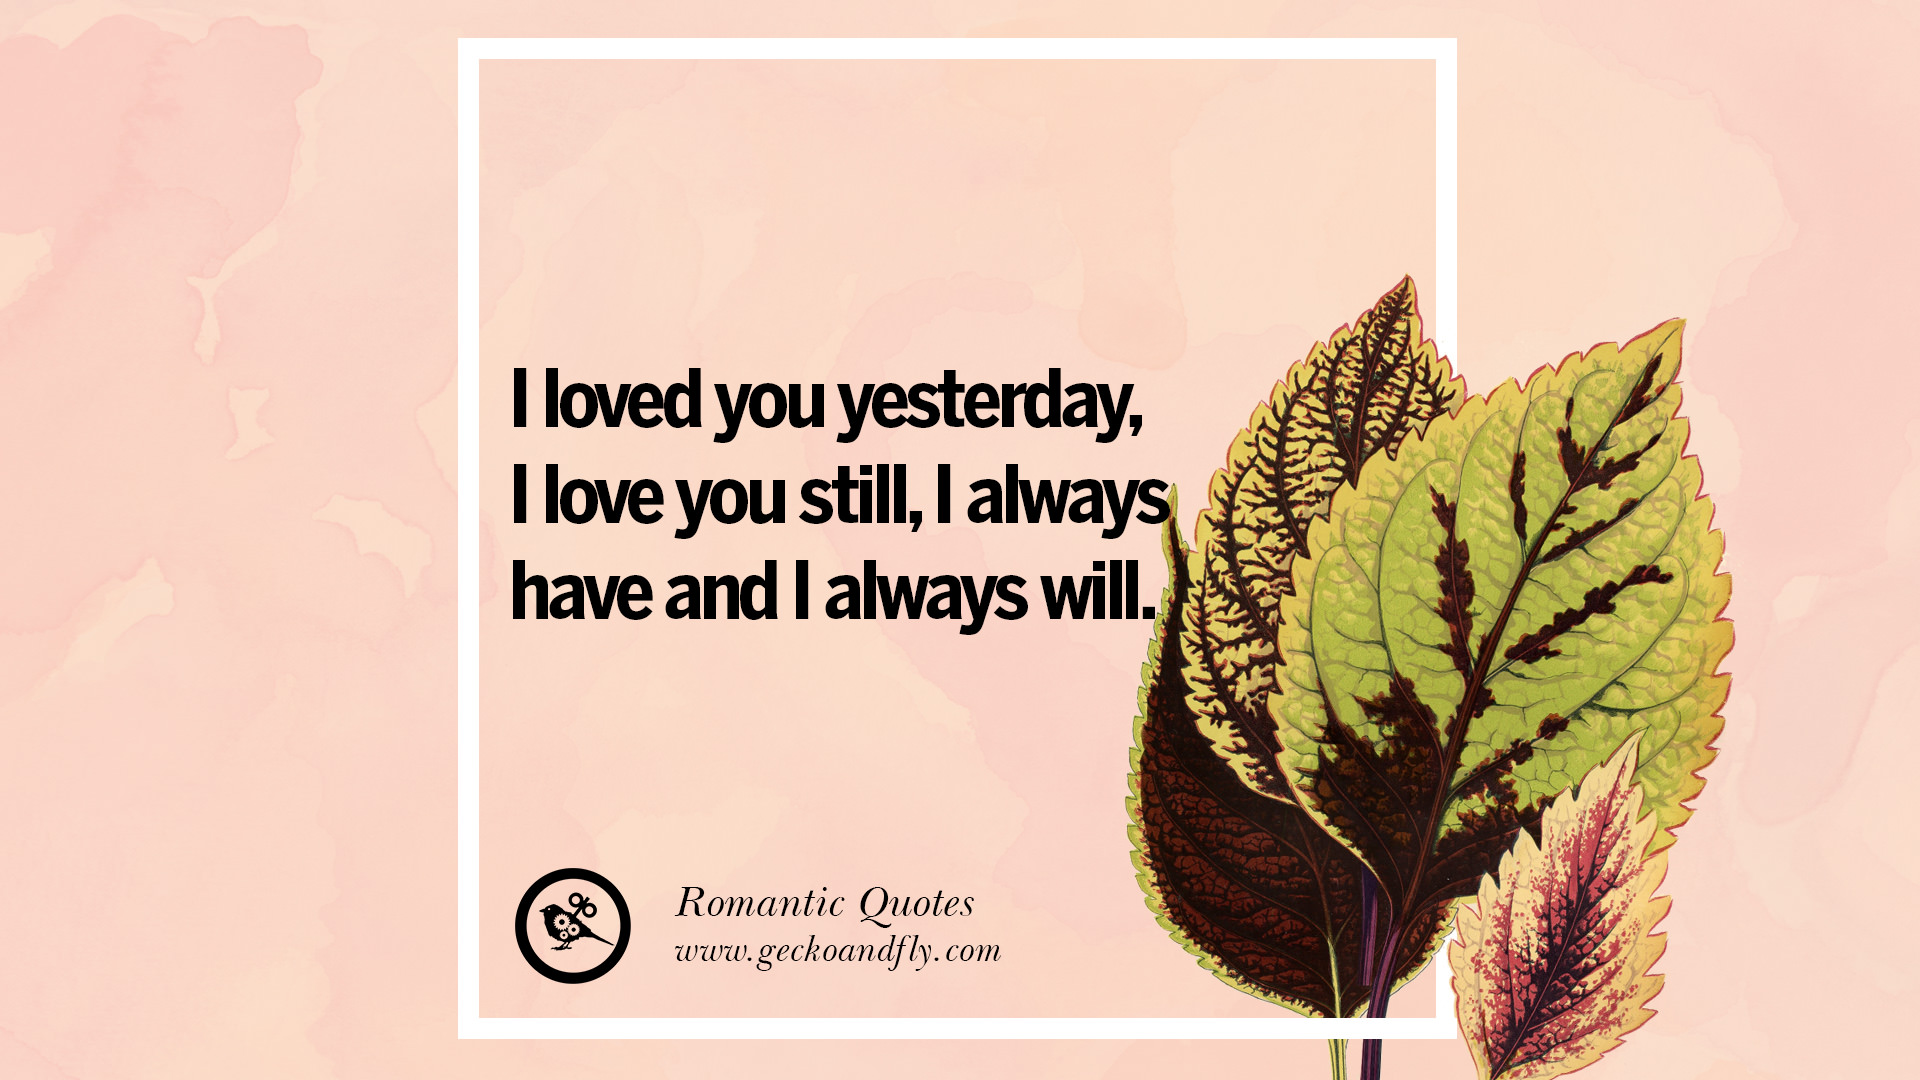 Loved You Yesterday Love You Still Quote: 36 Lovely Romantic Quotes And Wedding Vows For An